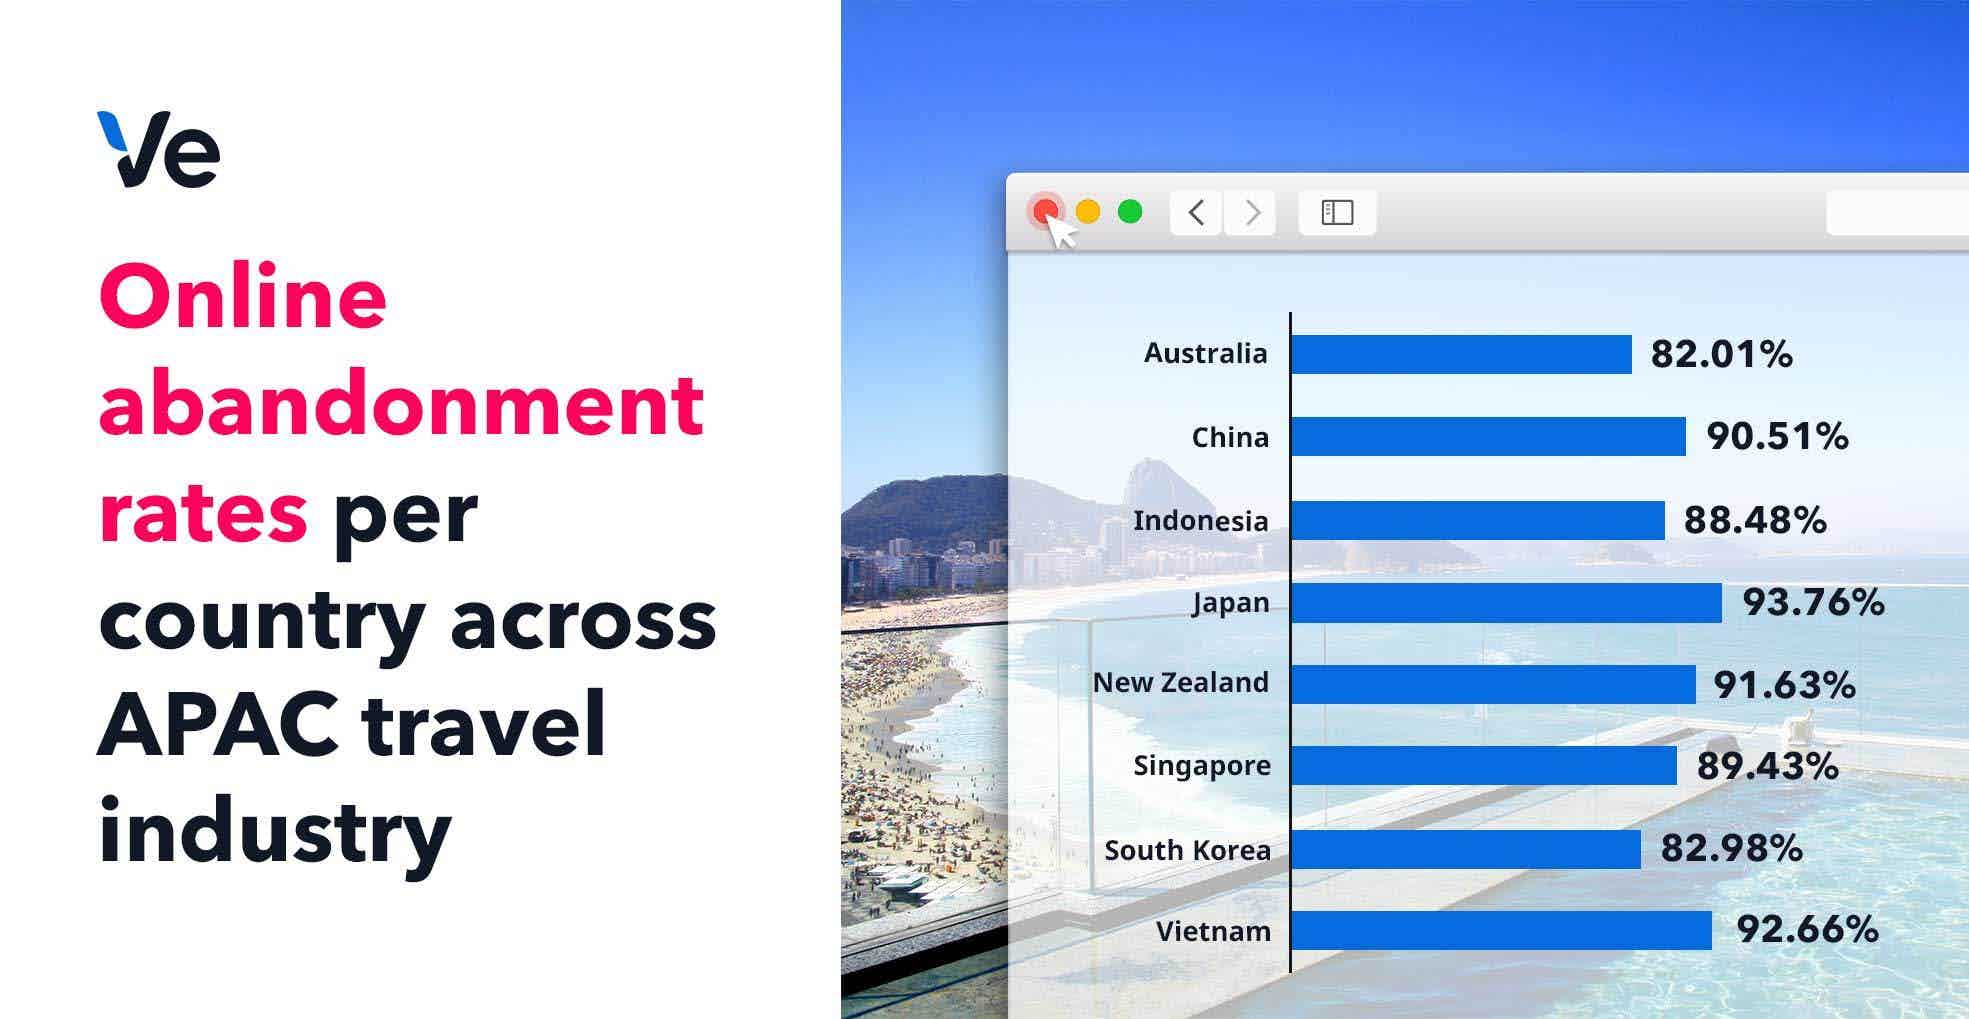 apac travel cart abandonment by country